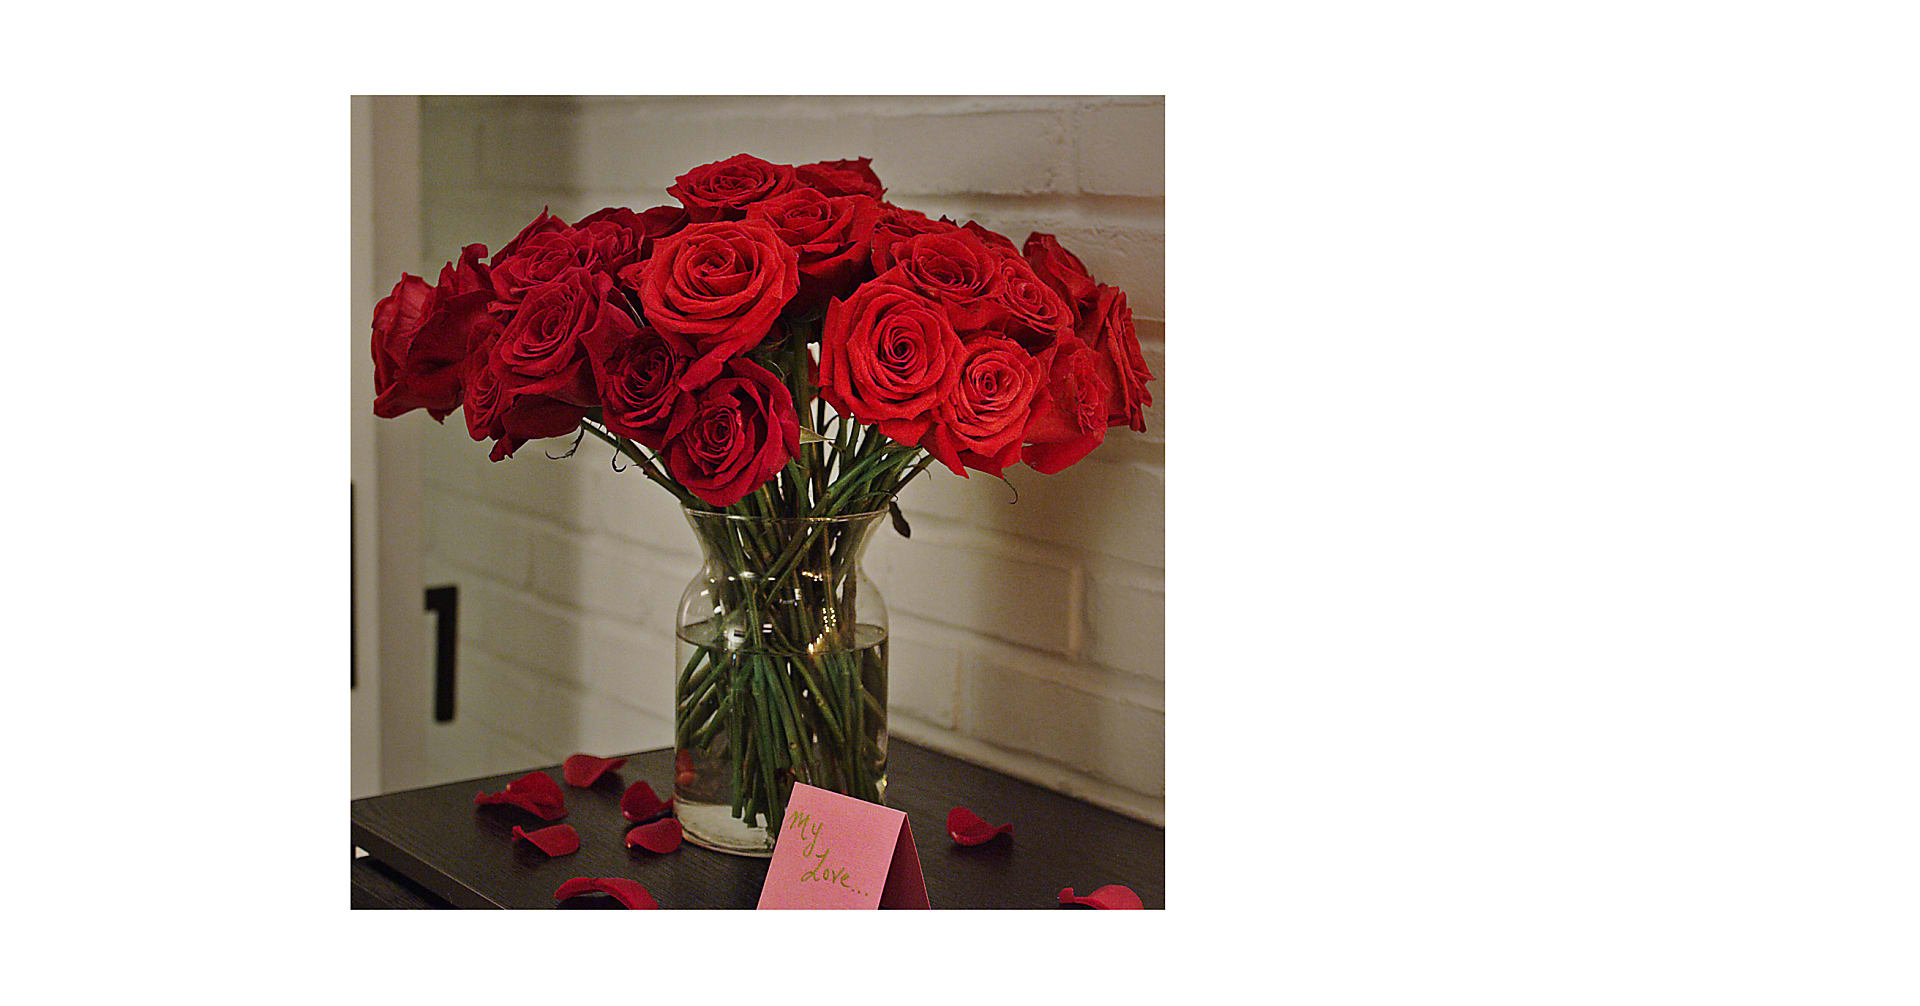 24 Red Roses with Glass Vase - Image 1 Of 3